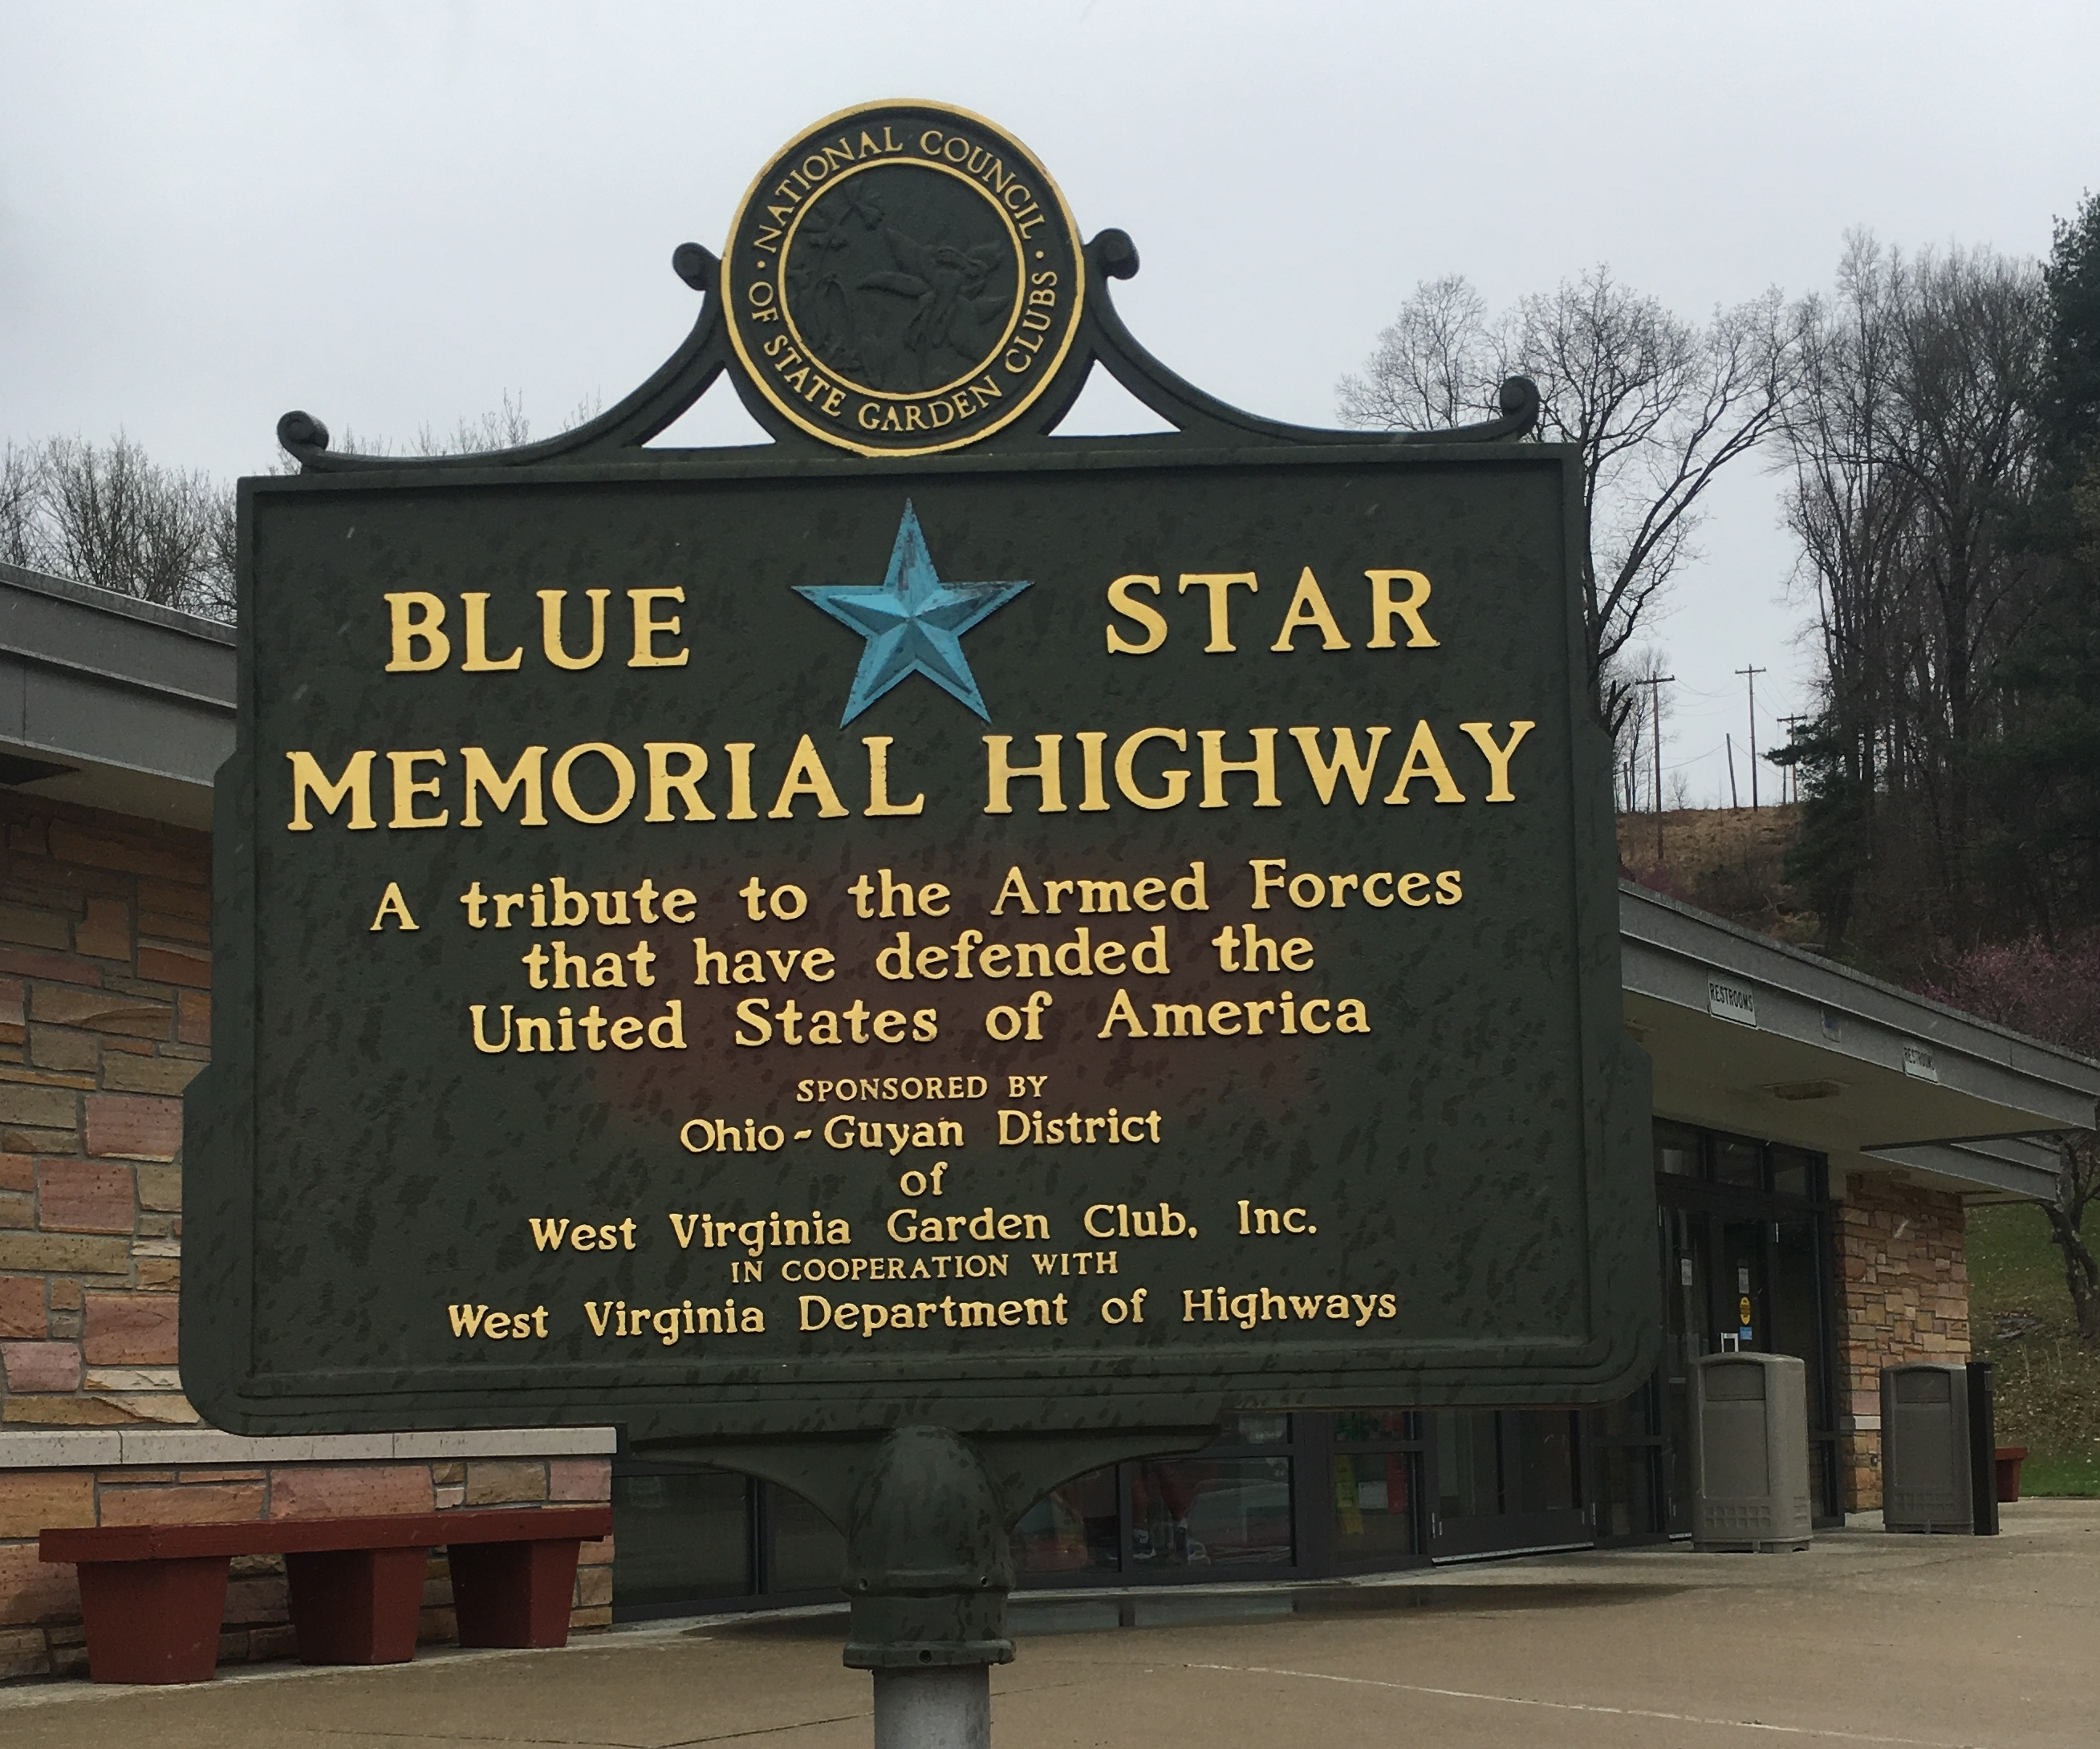 Close up of the Blue Star Memorial Highway marker located at the West Virginia Welcome Center (I-64 Eastbound), which includes the tribute to the Armed Forces as well as the sponsors of this marker.